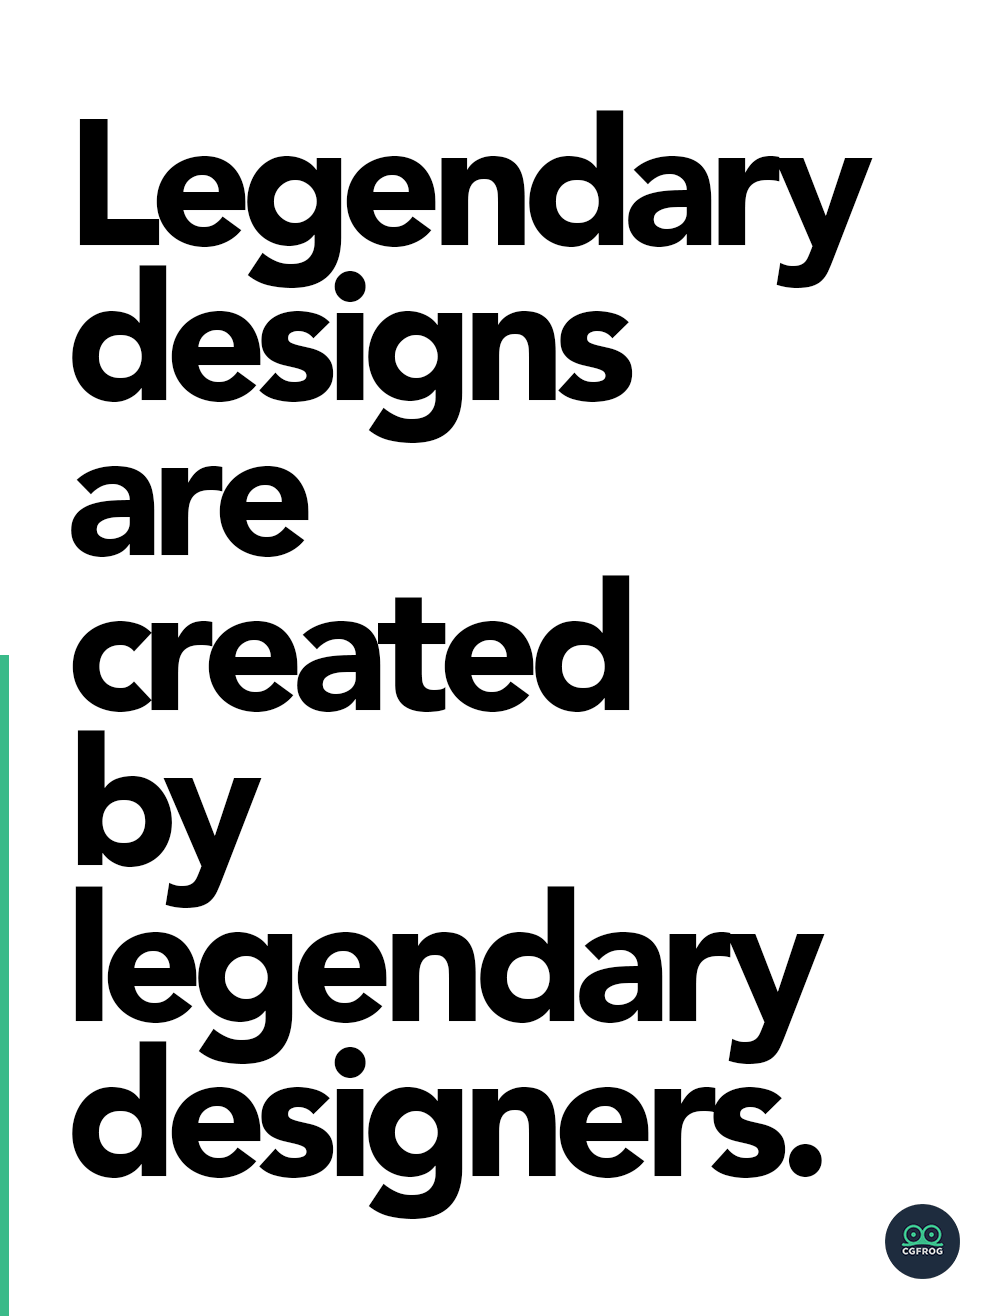 Legendary designs are created by legendary designers.